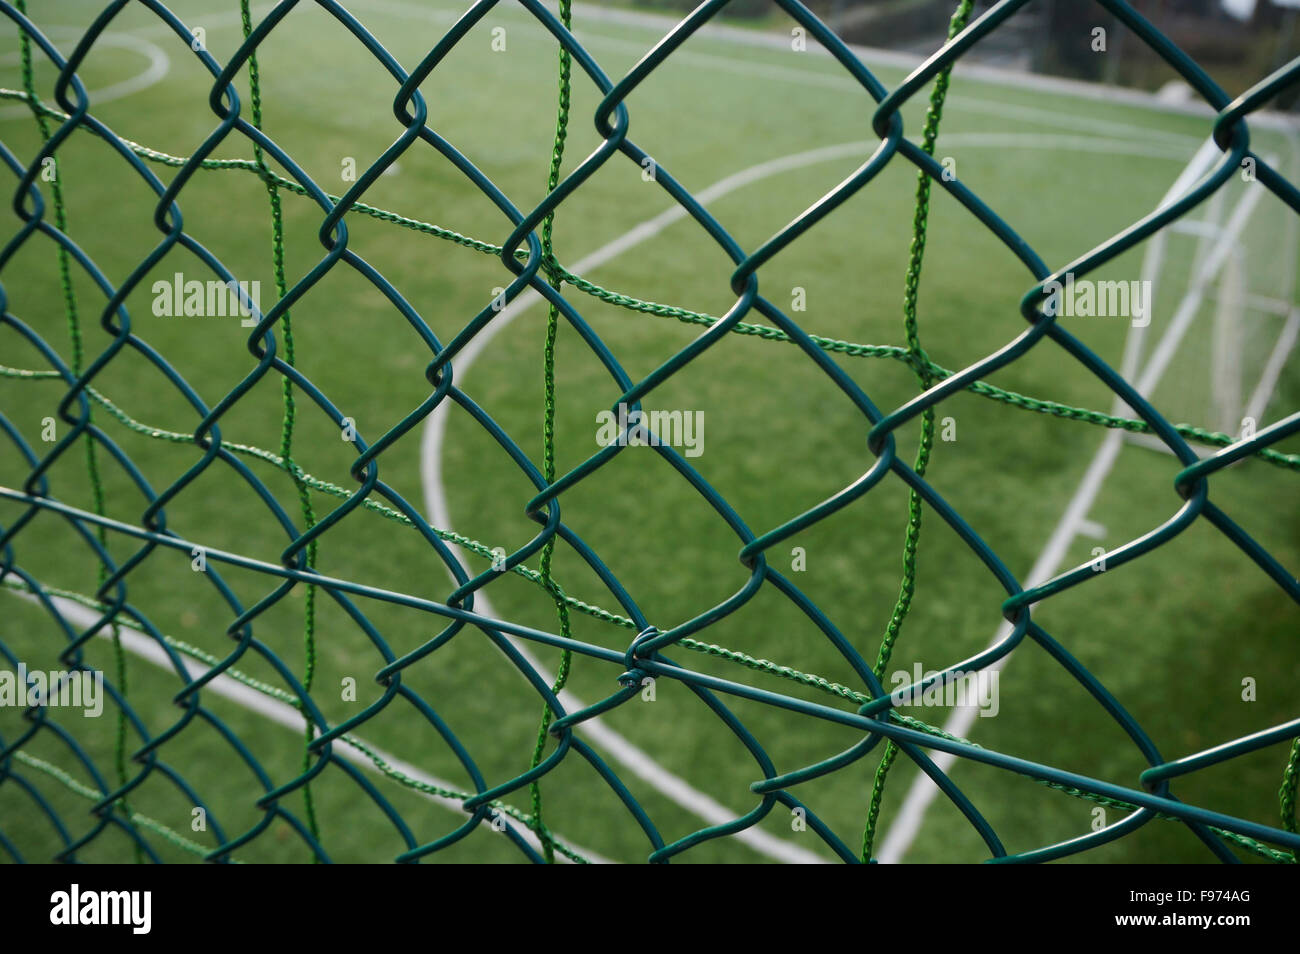 Fencing Net Stock Photos & Fencing Net Stock Images - Alamy